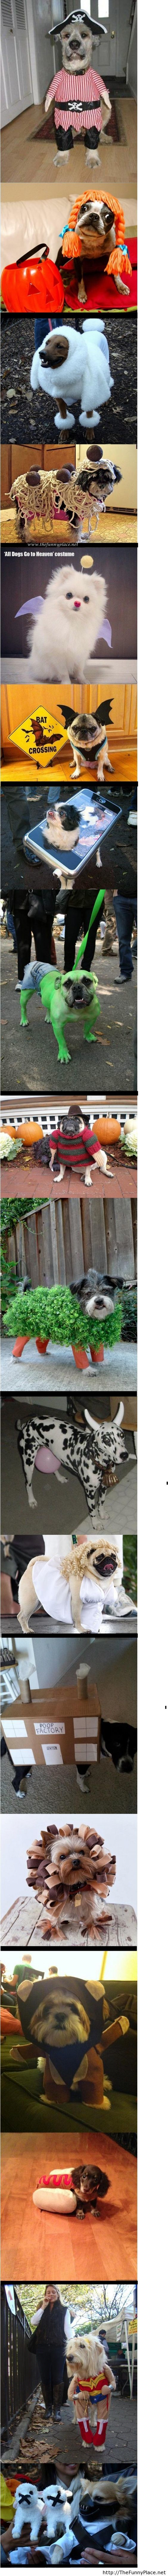 Dogs Getting Ready For Halloween 2013